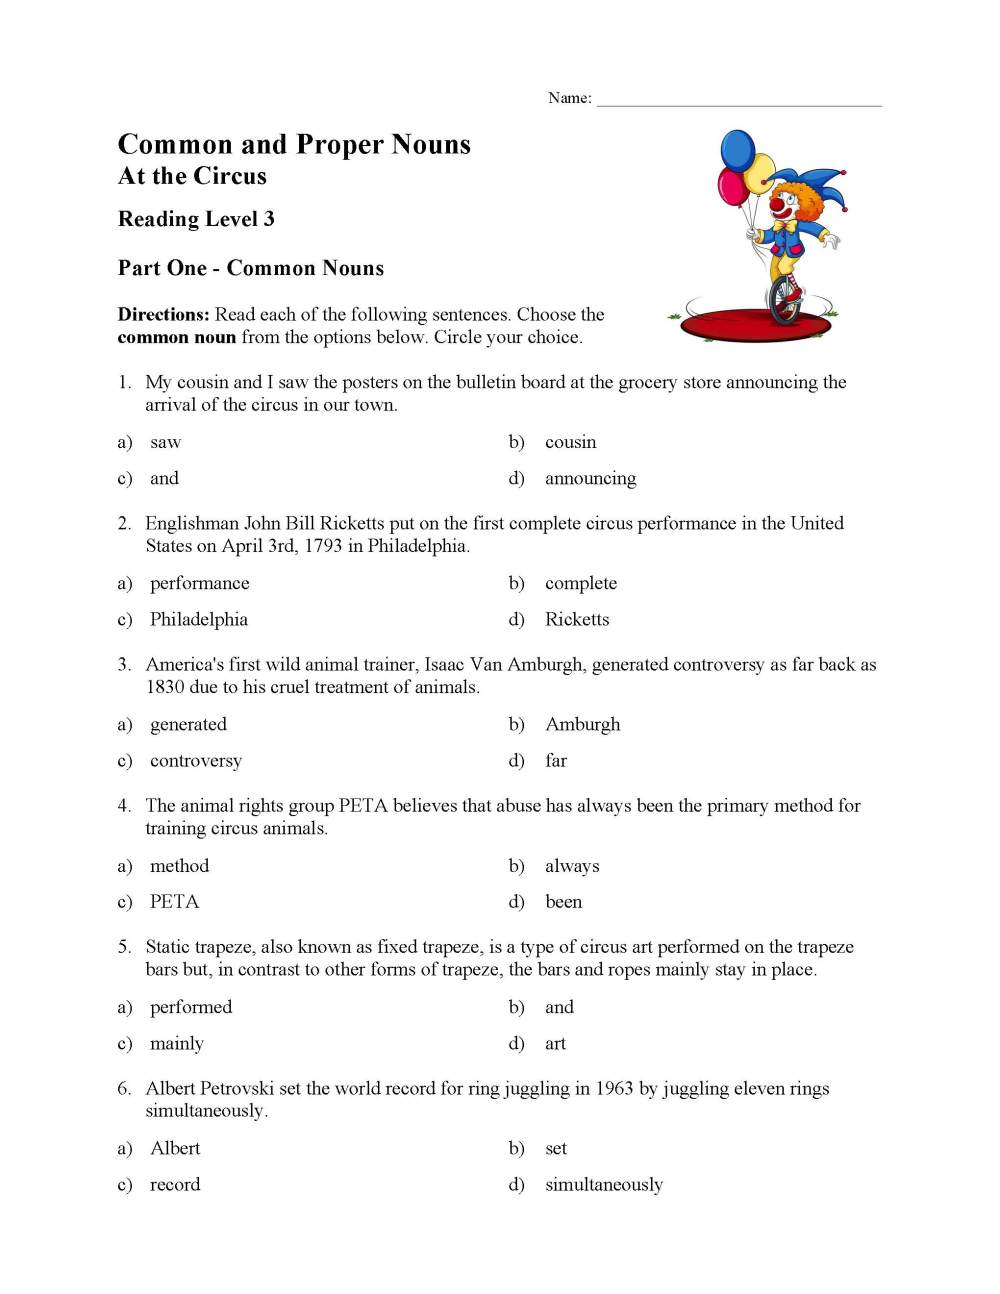 medium resolution of Common and Proper Nouns Test 3   Reading Level 3   Preview